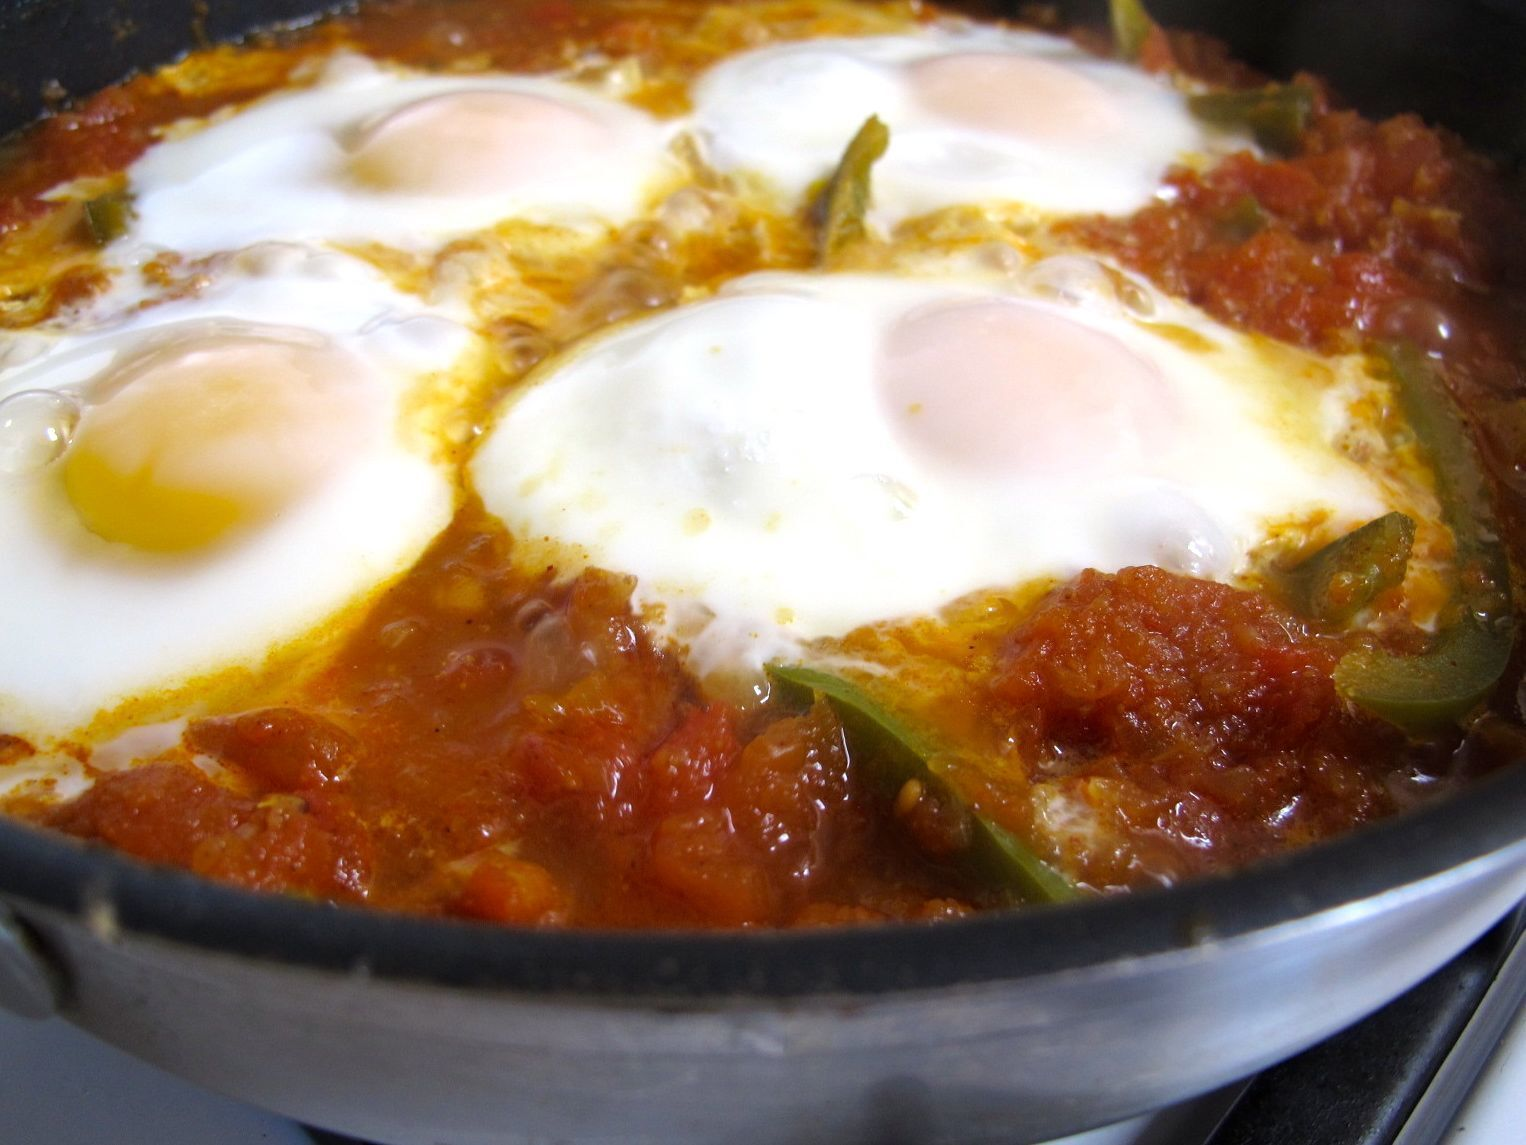 Parsi Tomato-Poached Eggs